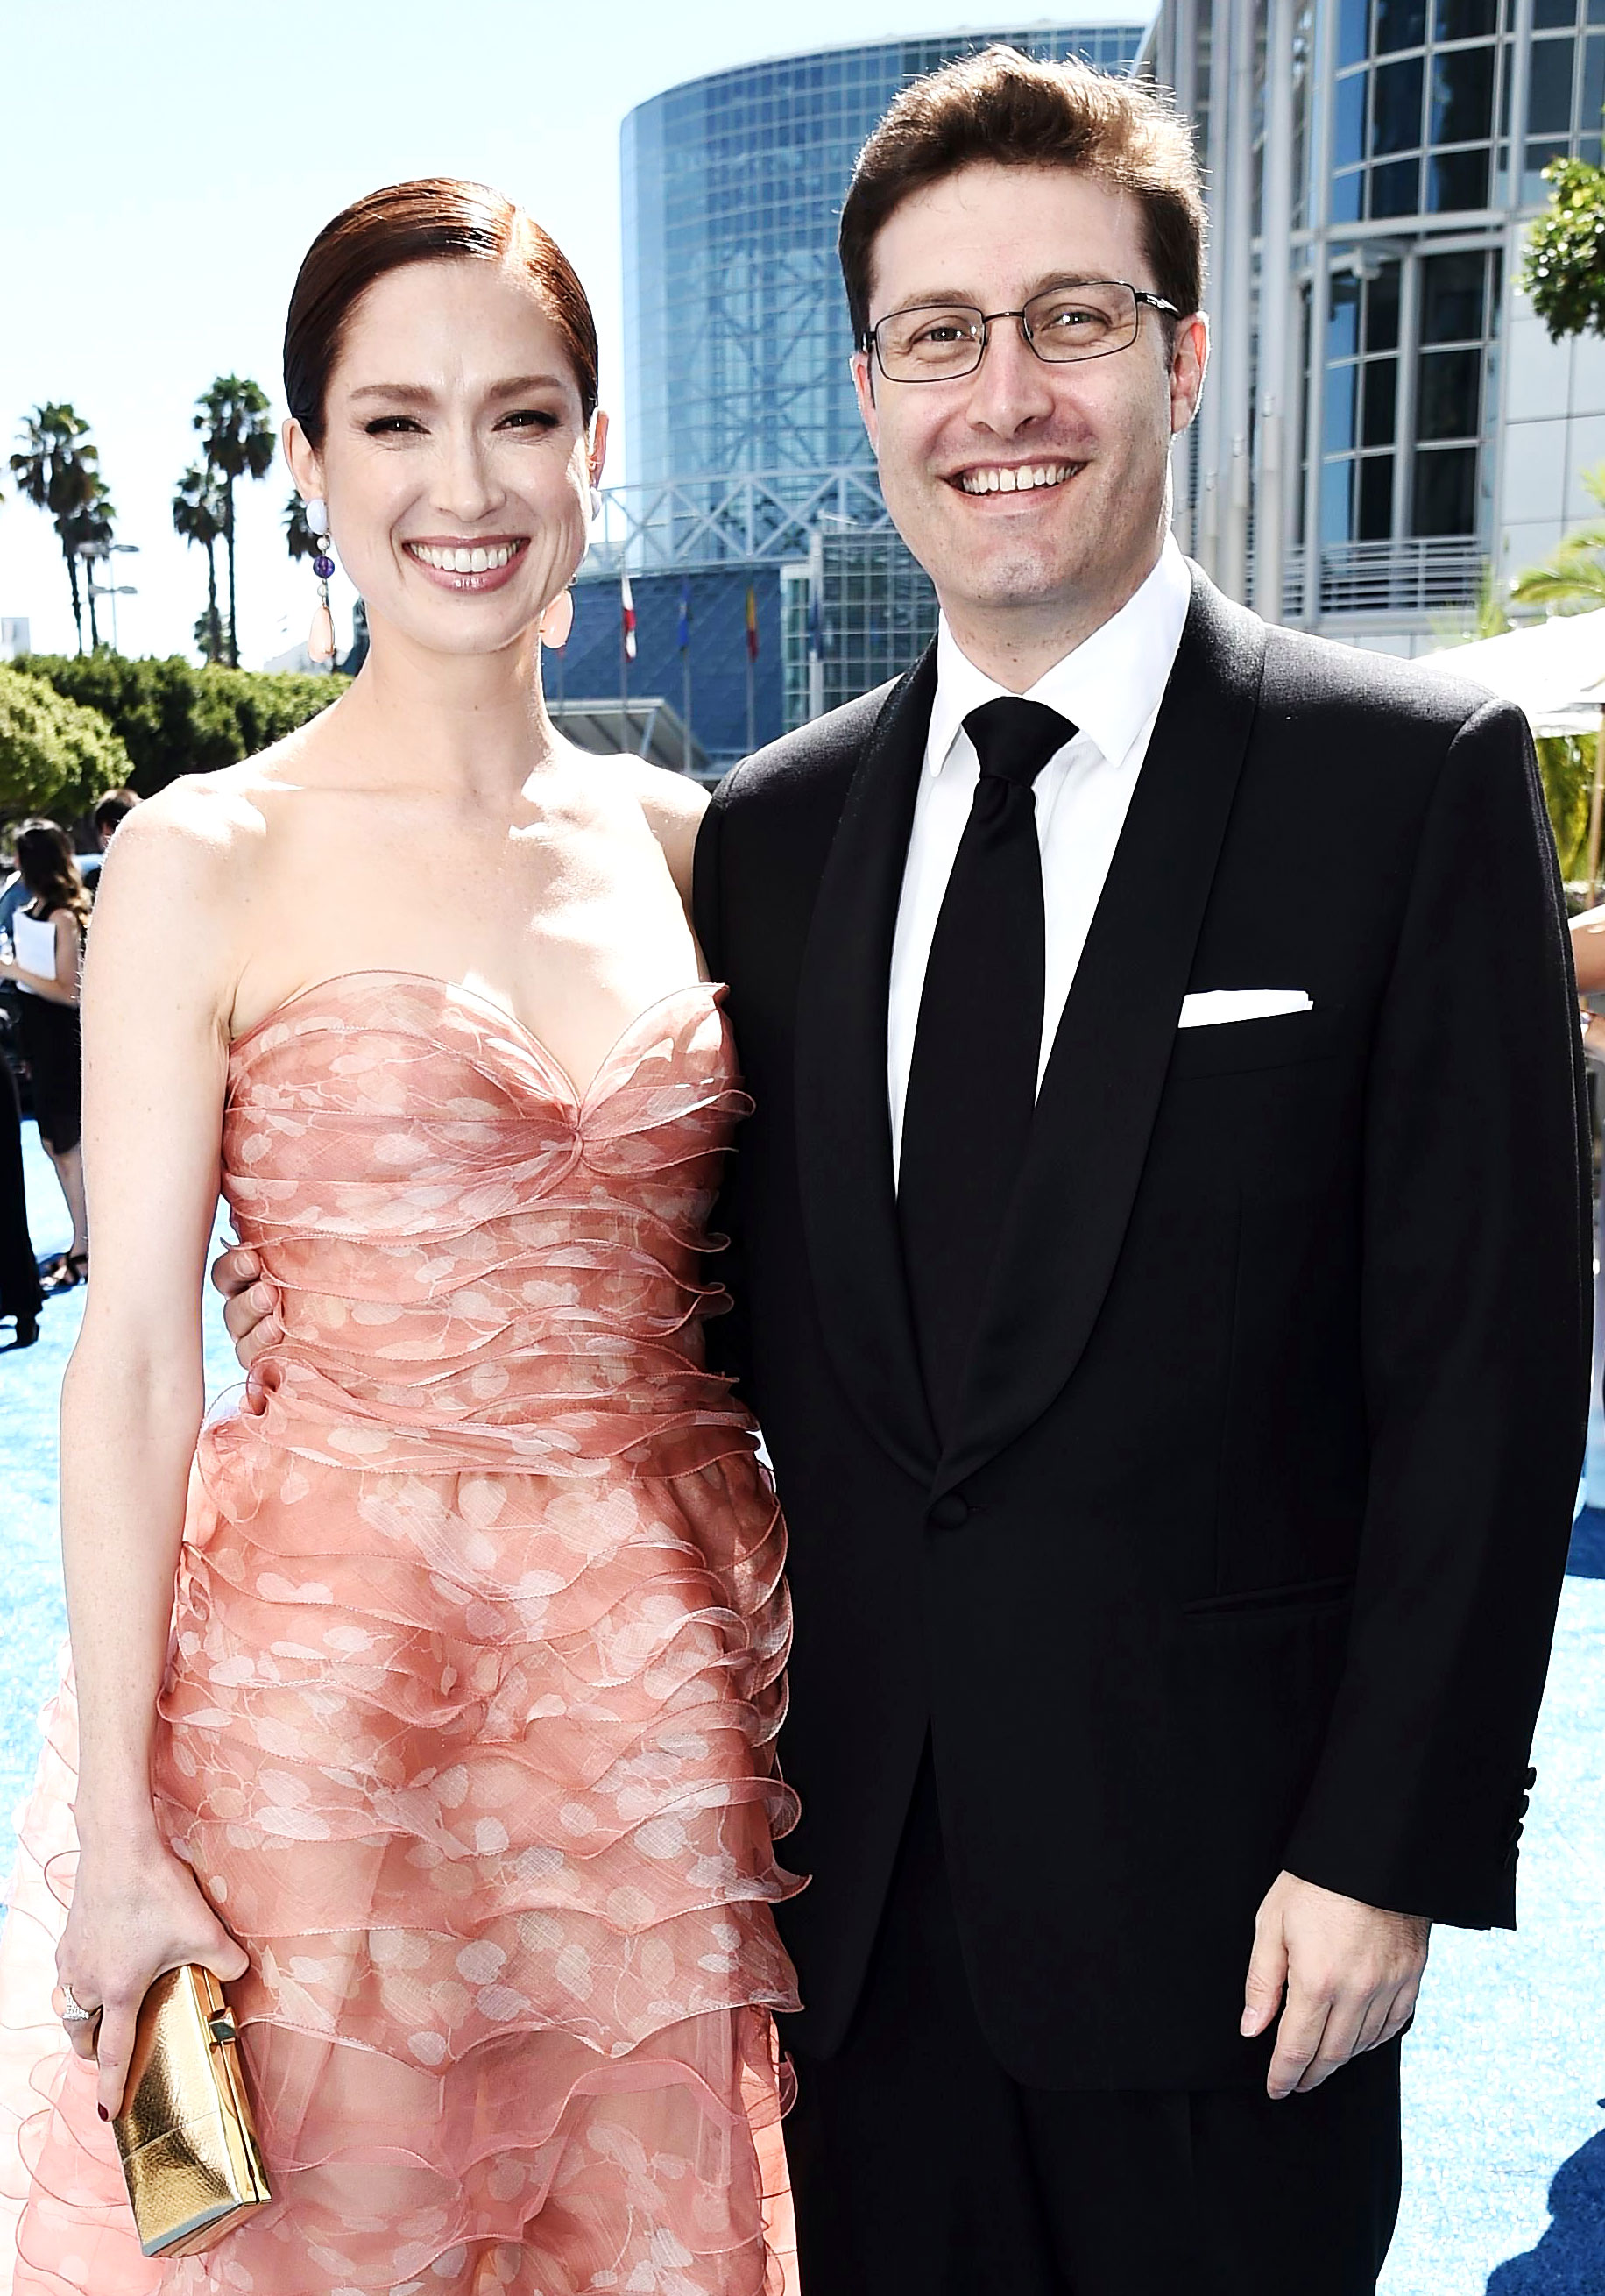 Ellie Kemper Gives Birth To 2nd Child With Husband Michael